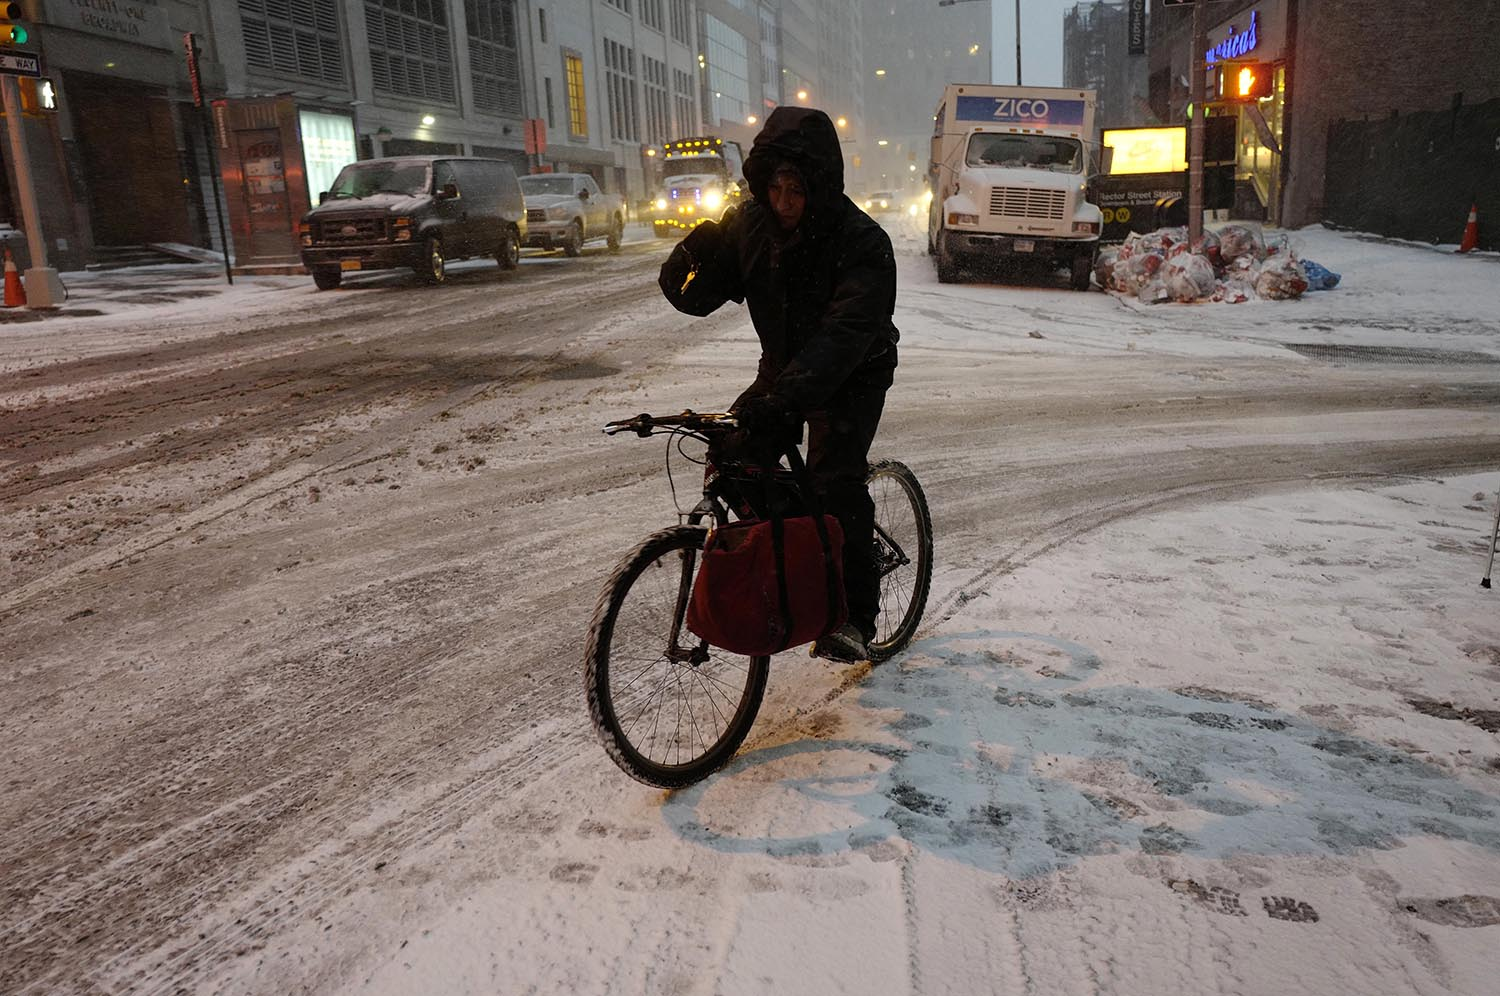 <div class='meta'><div class='origin-logo' data-origin='AP'></div><span class='caption-text' data-credit='AP Photo/Mark Lennihan'>A bicyclist maneuvers through an early morning snowfall, Thursday, Jan. 4, 2018, in New York.</span></div>